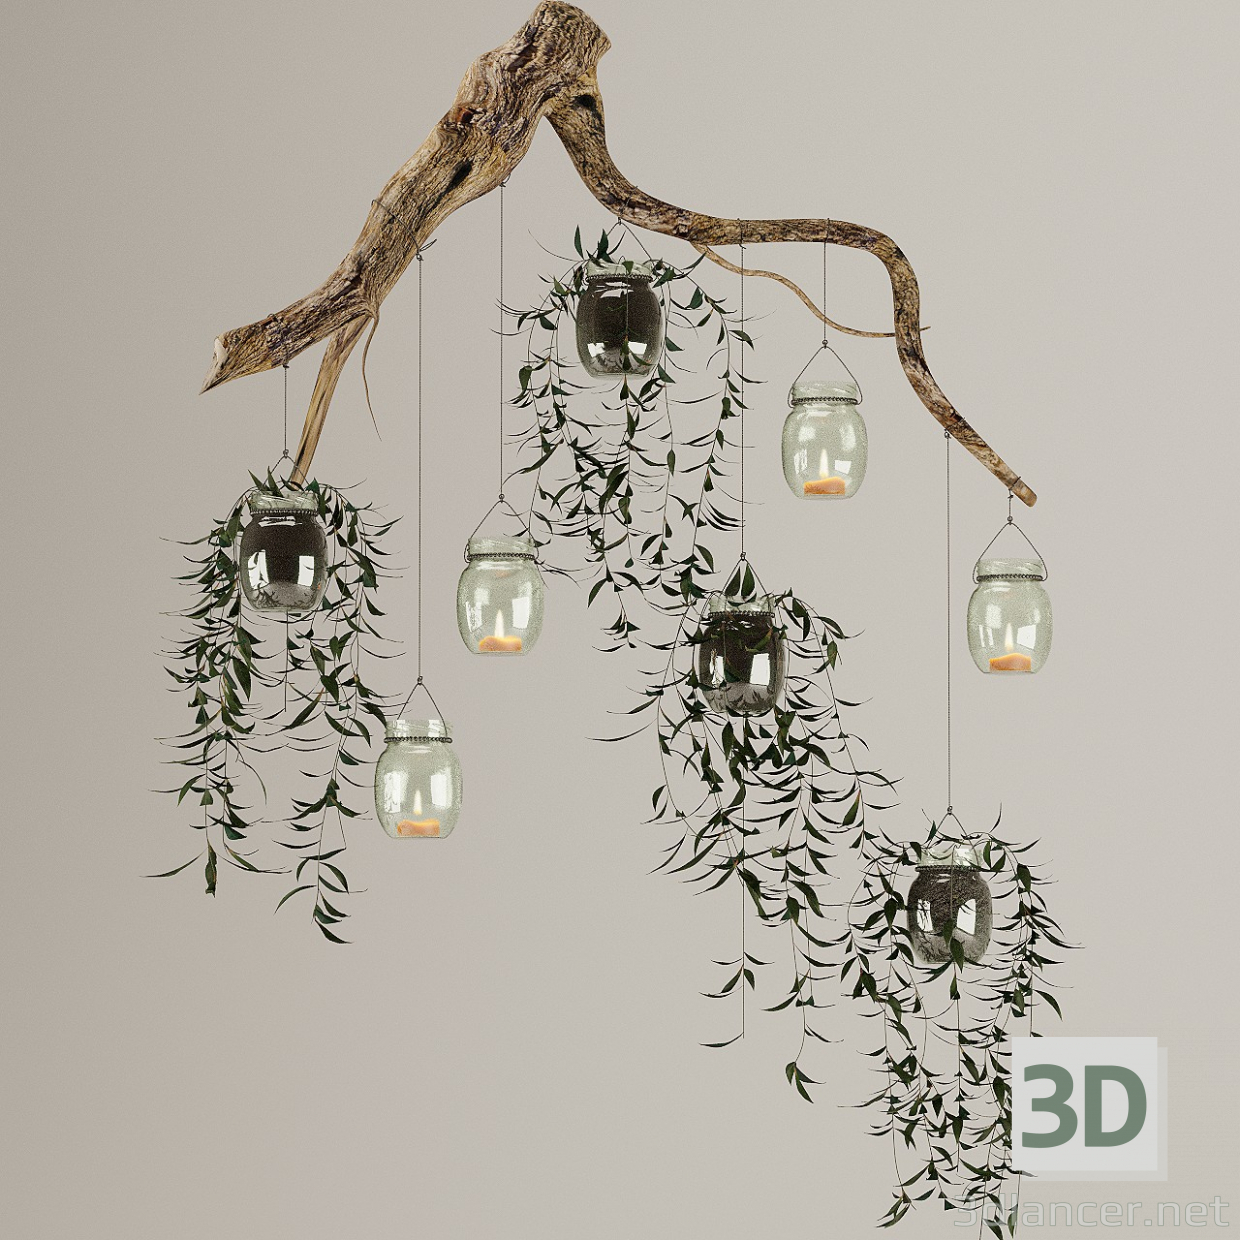 3d Wooden Branch with Plants in Pots and Candles model buy - render